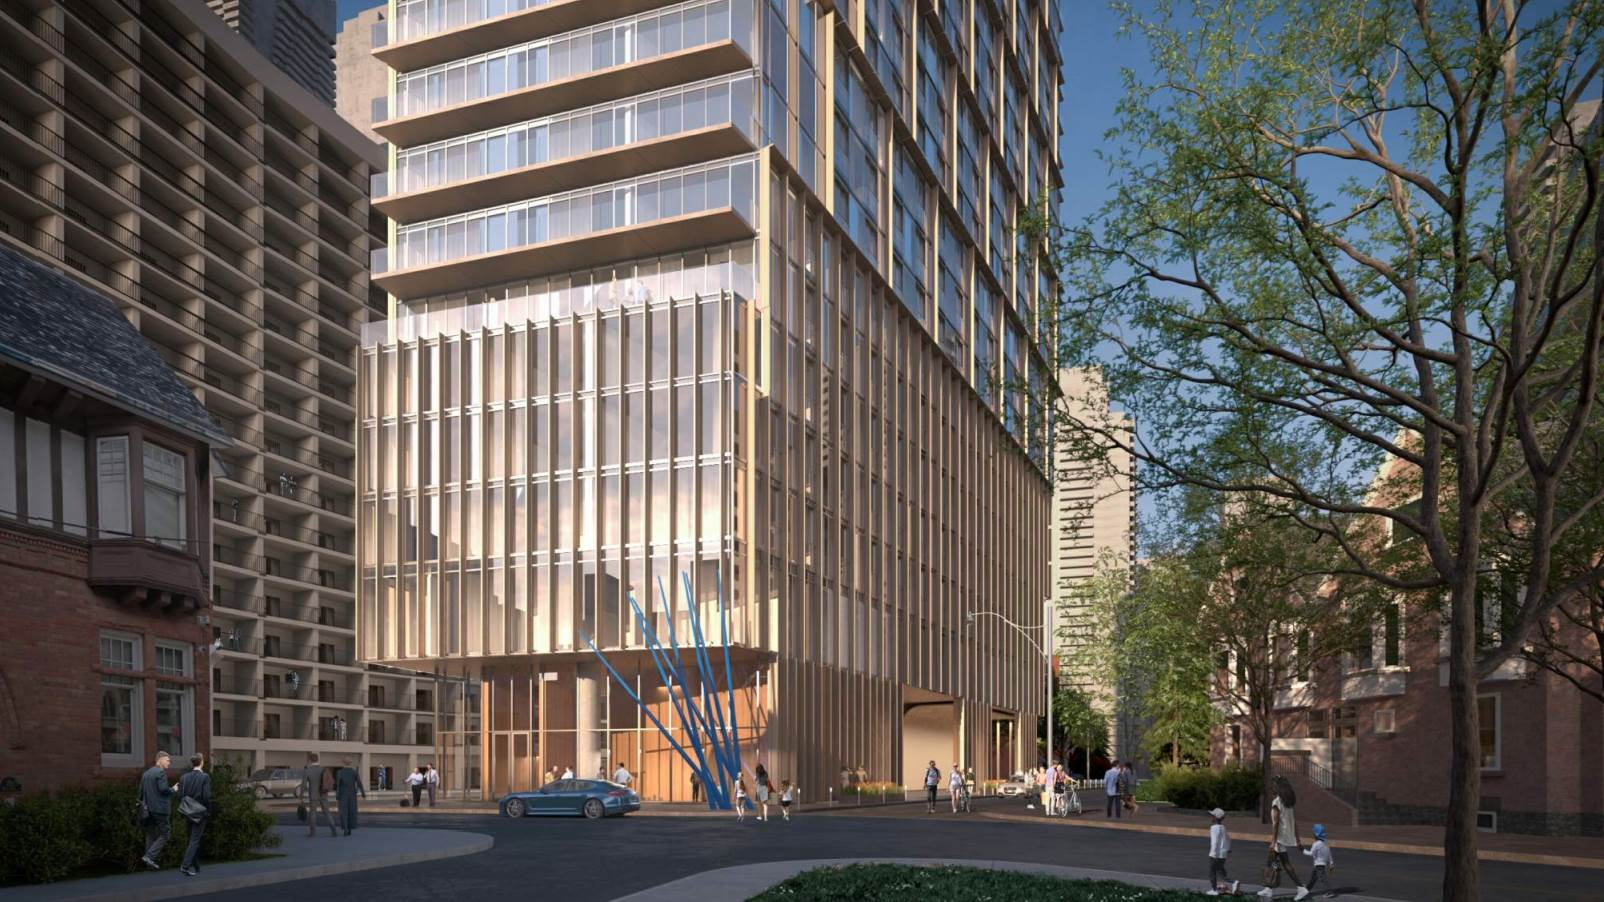 2020_12_04_04_19_20_717churchstreetcondos_rendering2-万能看图王